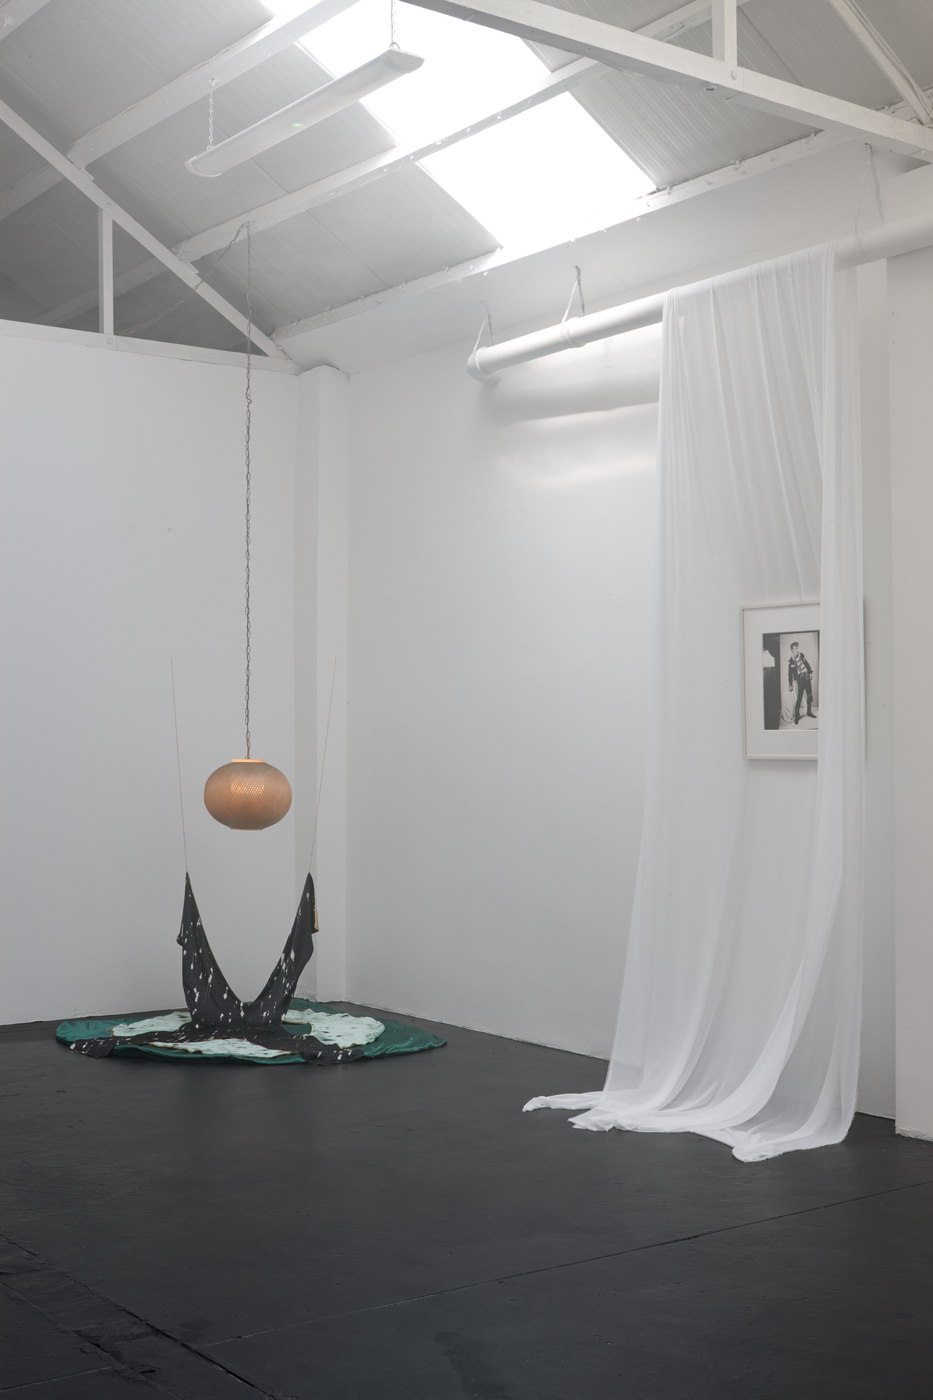 Take this Gum and Stick it - Installation View III